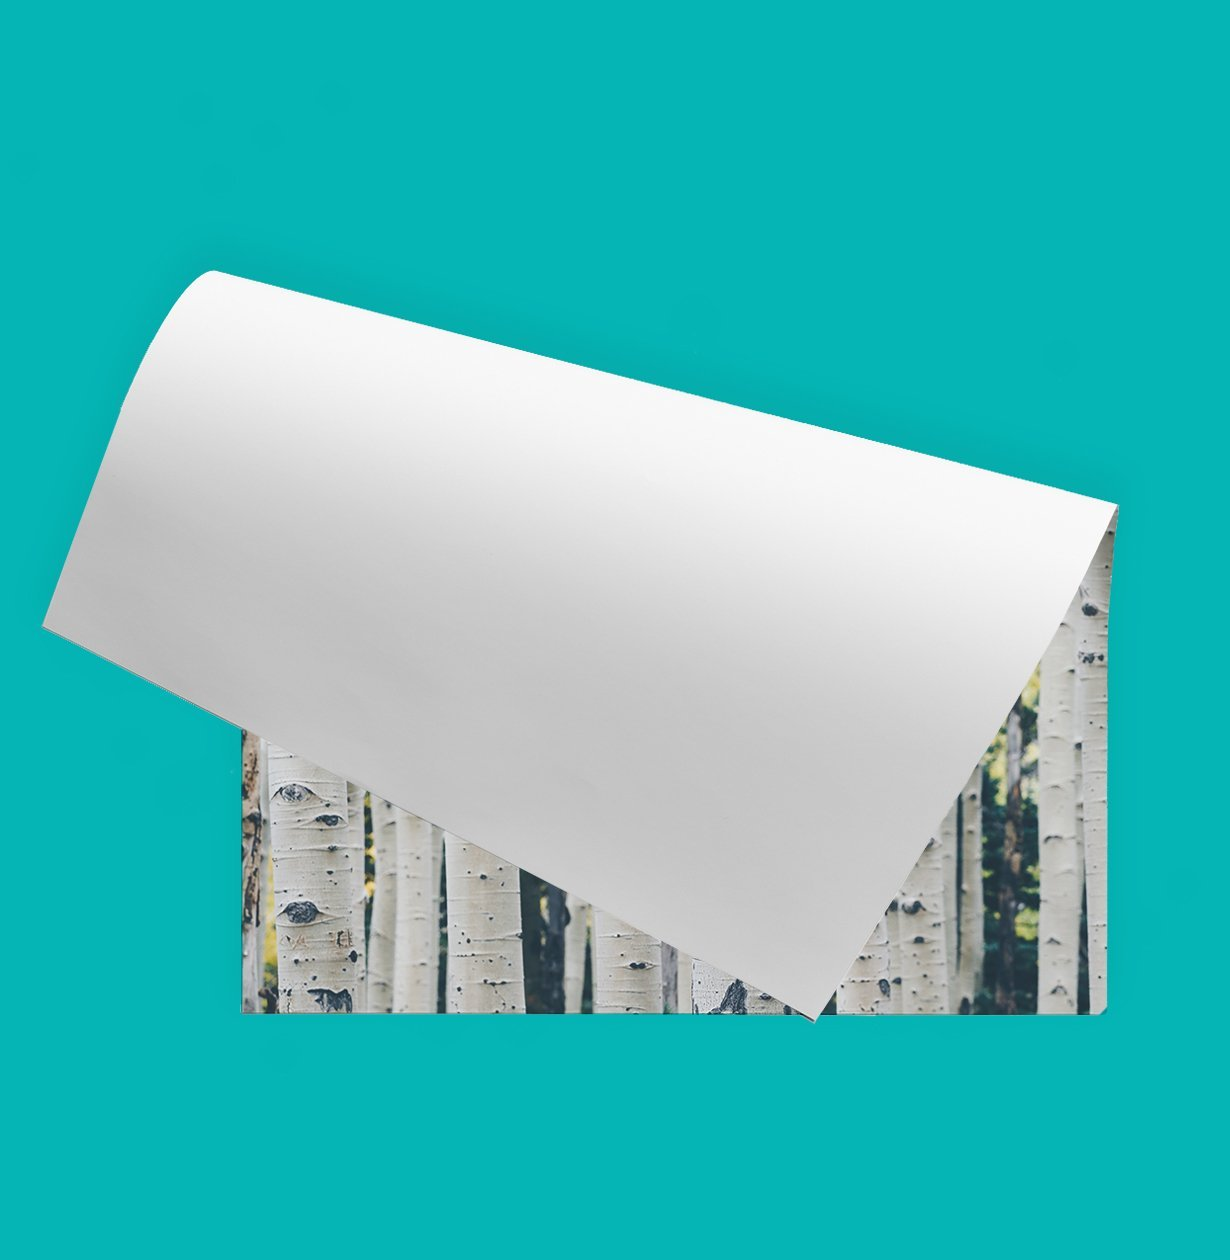 Custom Wall Decal Poster Prints: Wall Decor Stickers